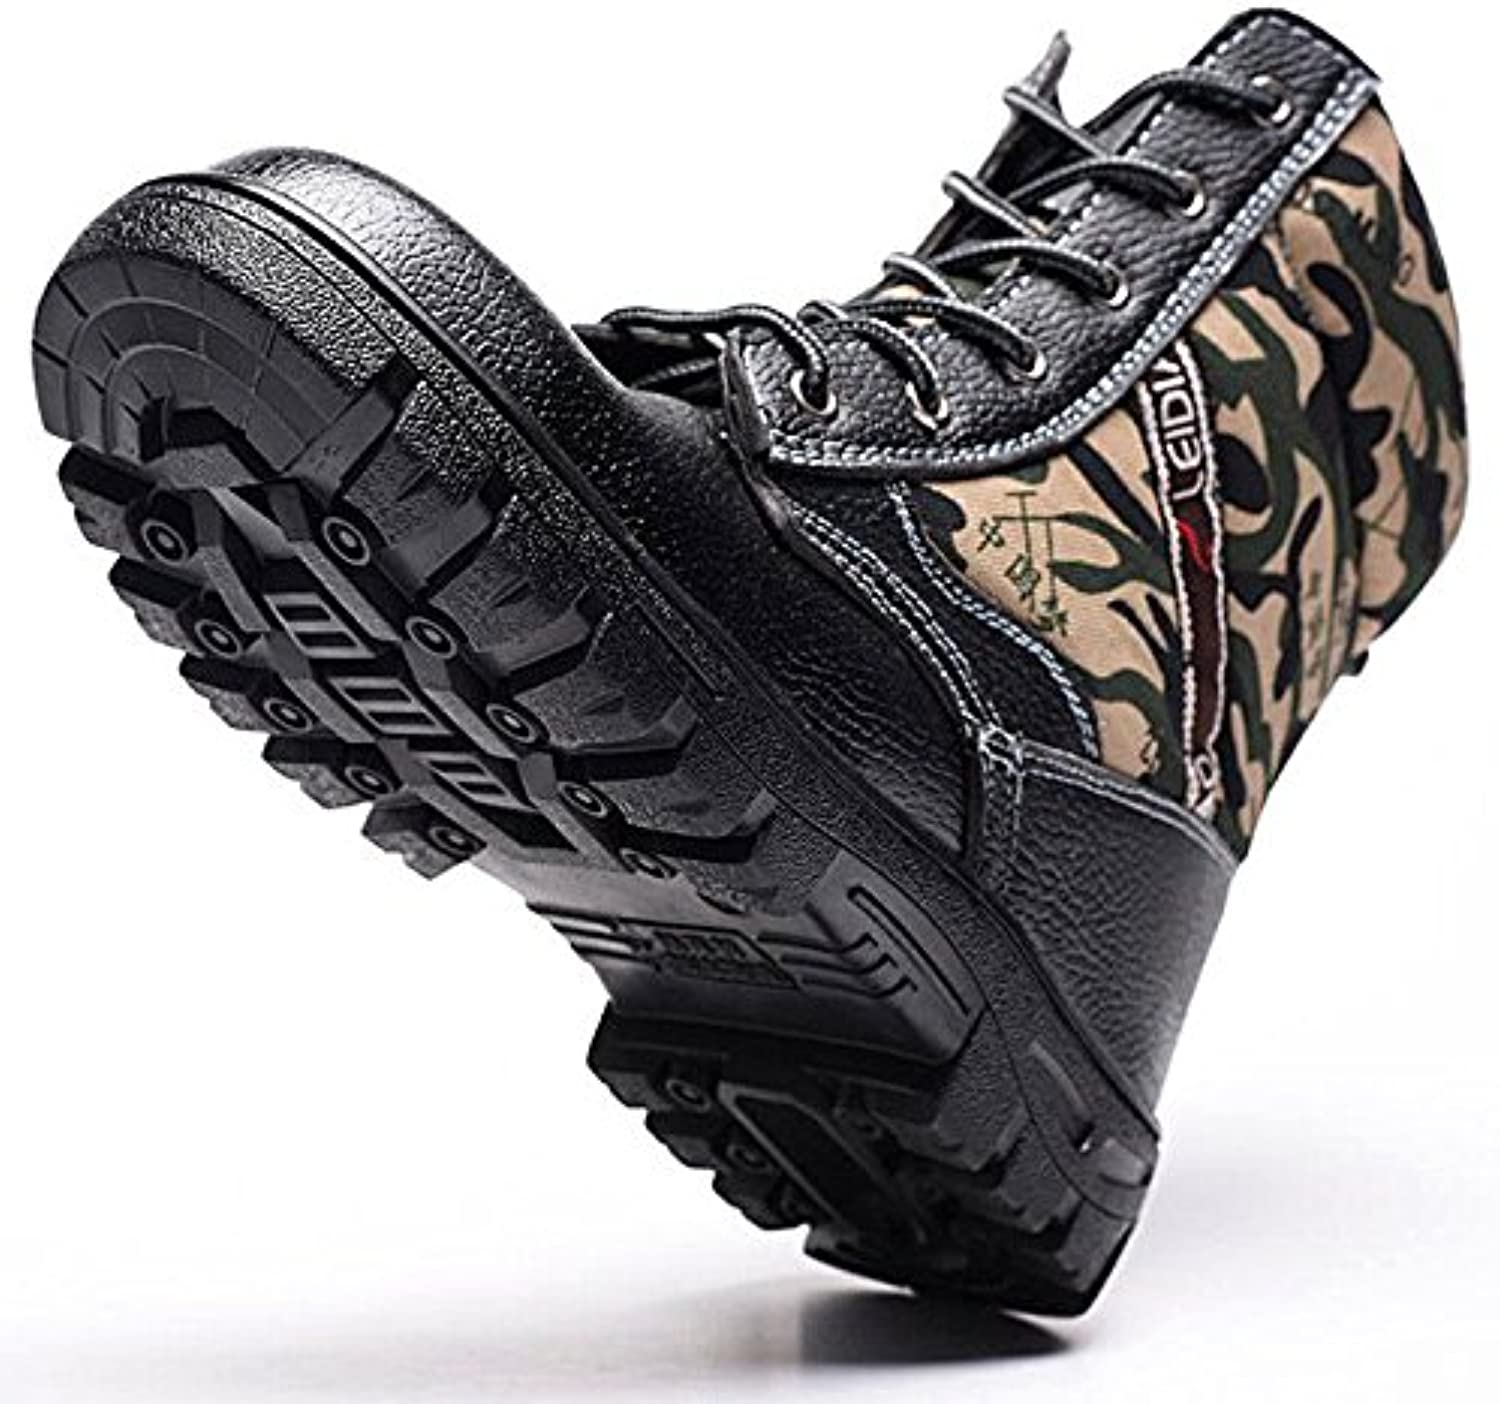 ShopSquare64 Winter Mens Camouflage Steel Toe Fur Lined Work Ankle Boots Labor Safety shoes